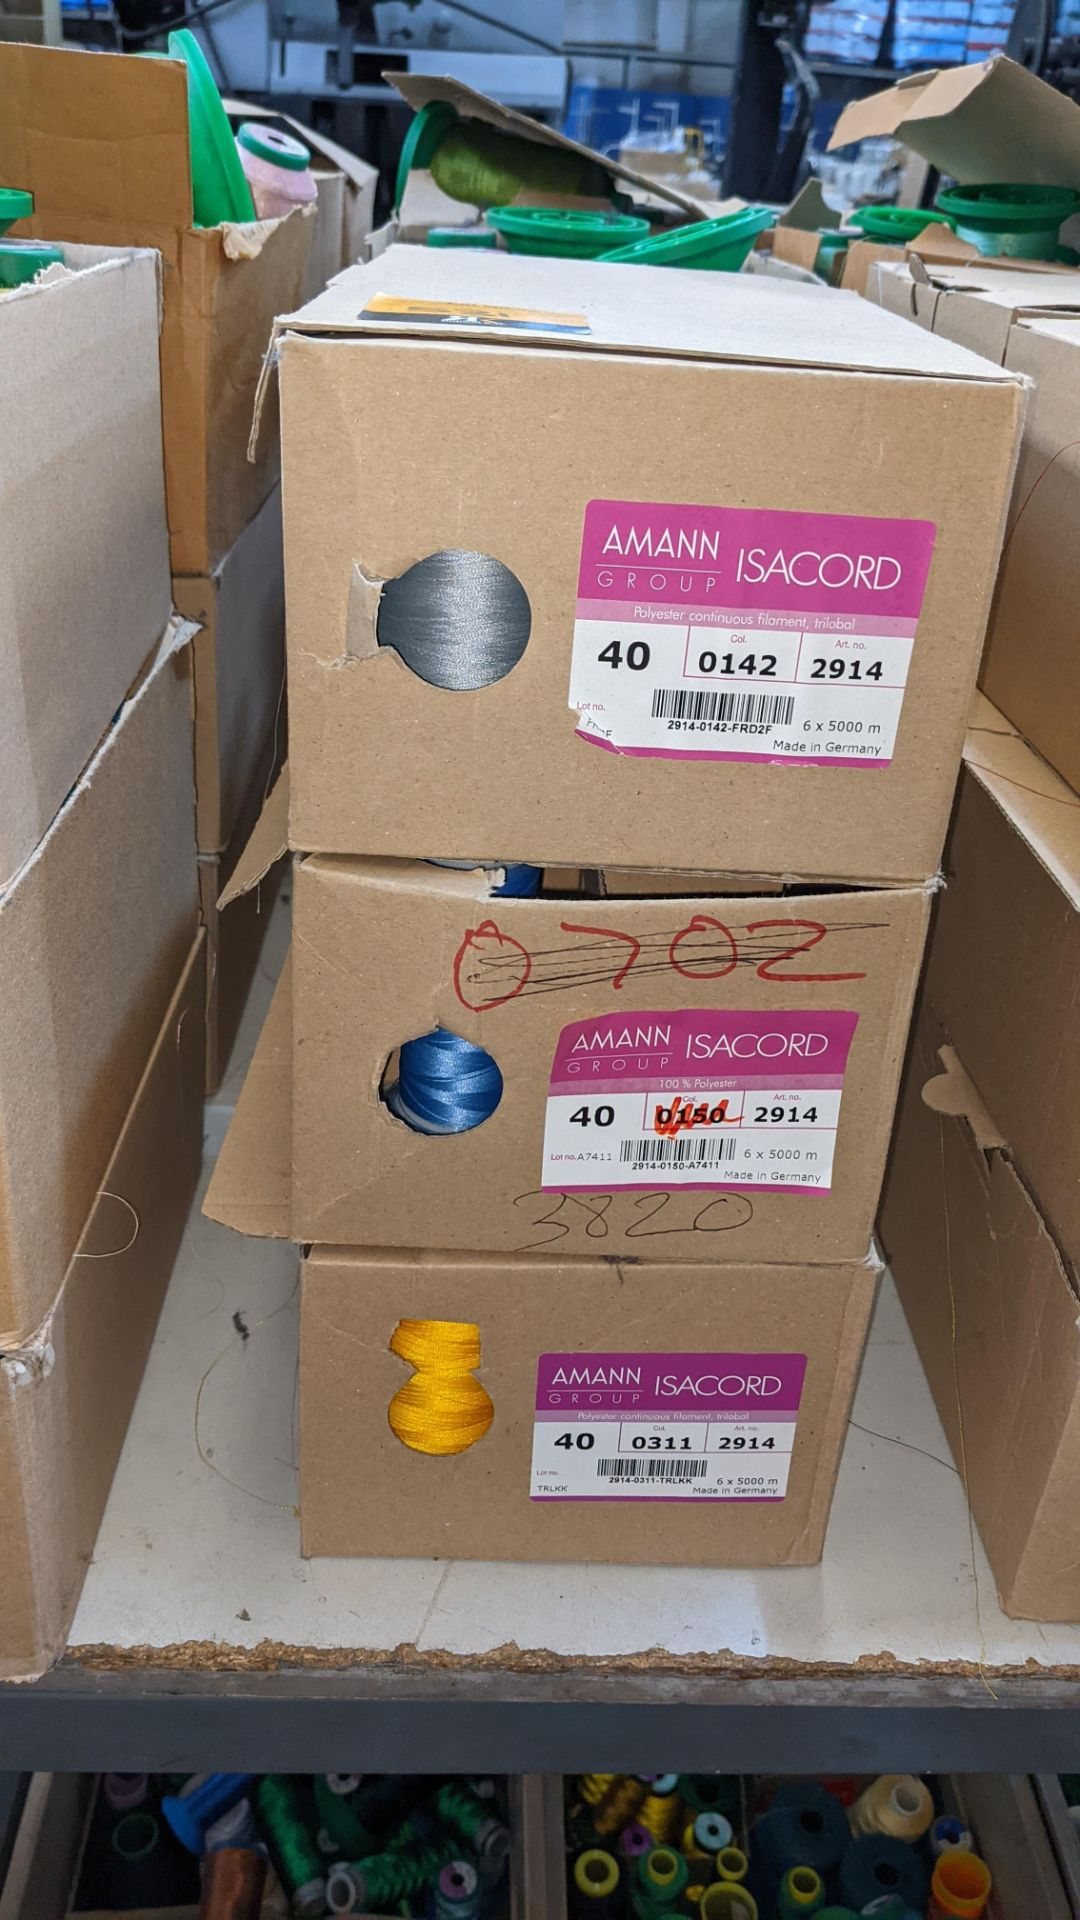 12 boxes of Ackermann Isacord (40) polyester thread - Image 4 of 7